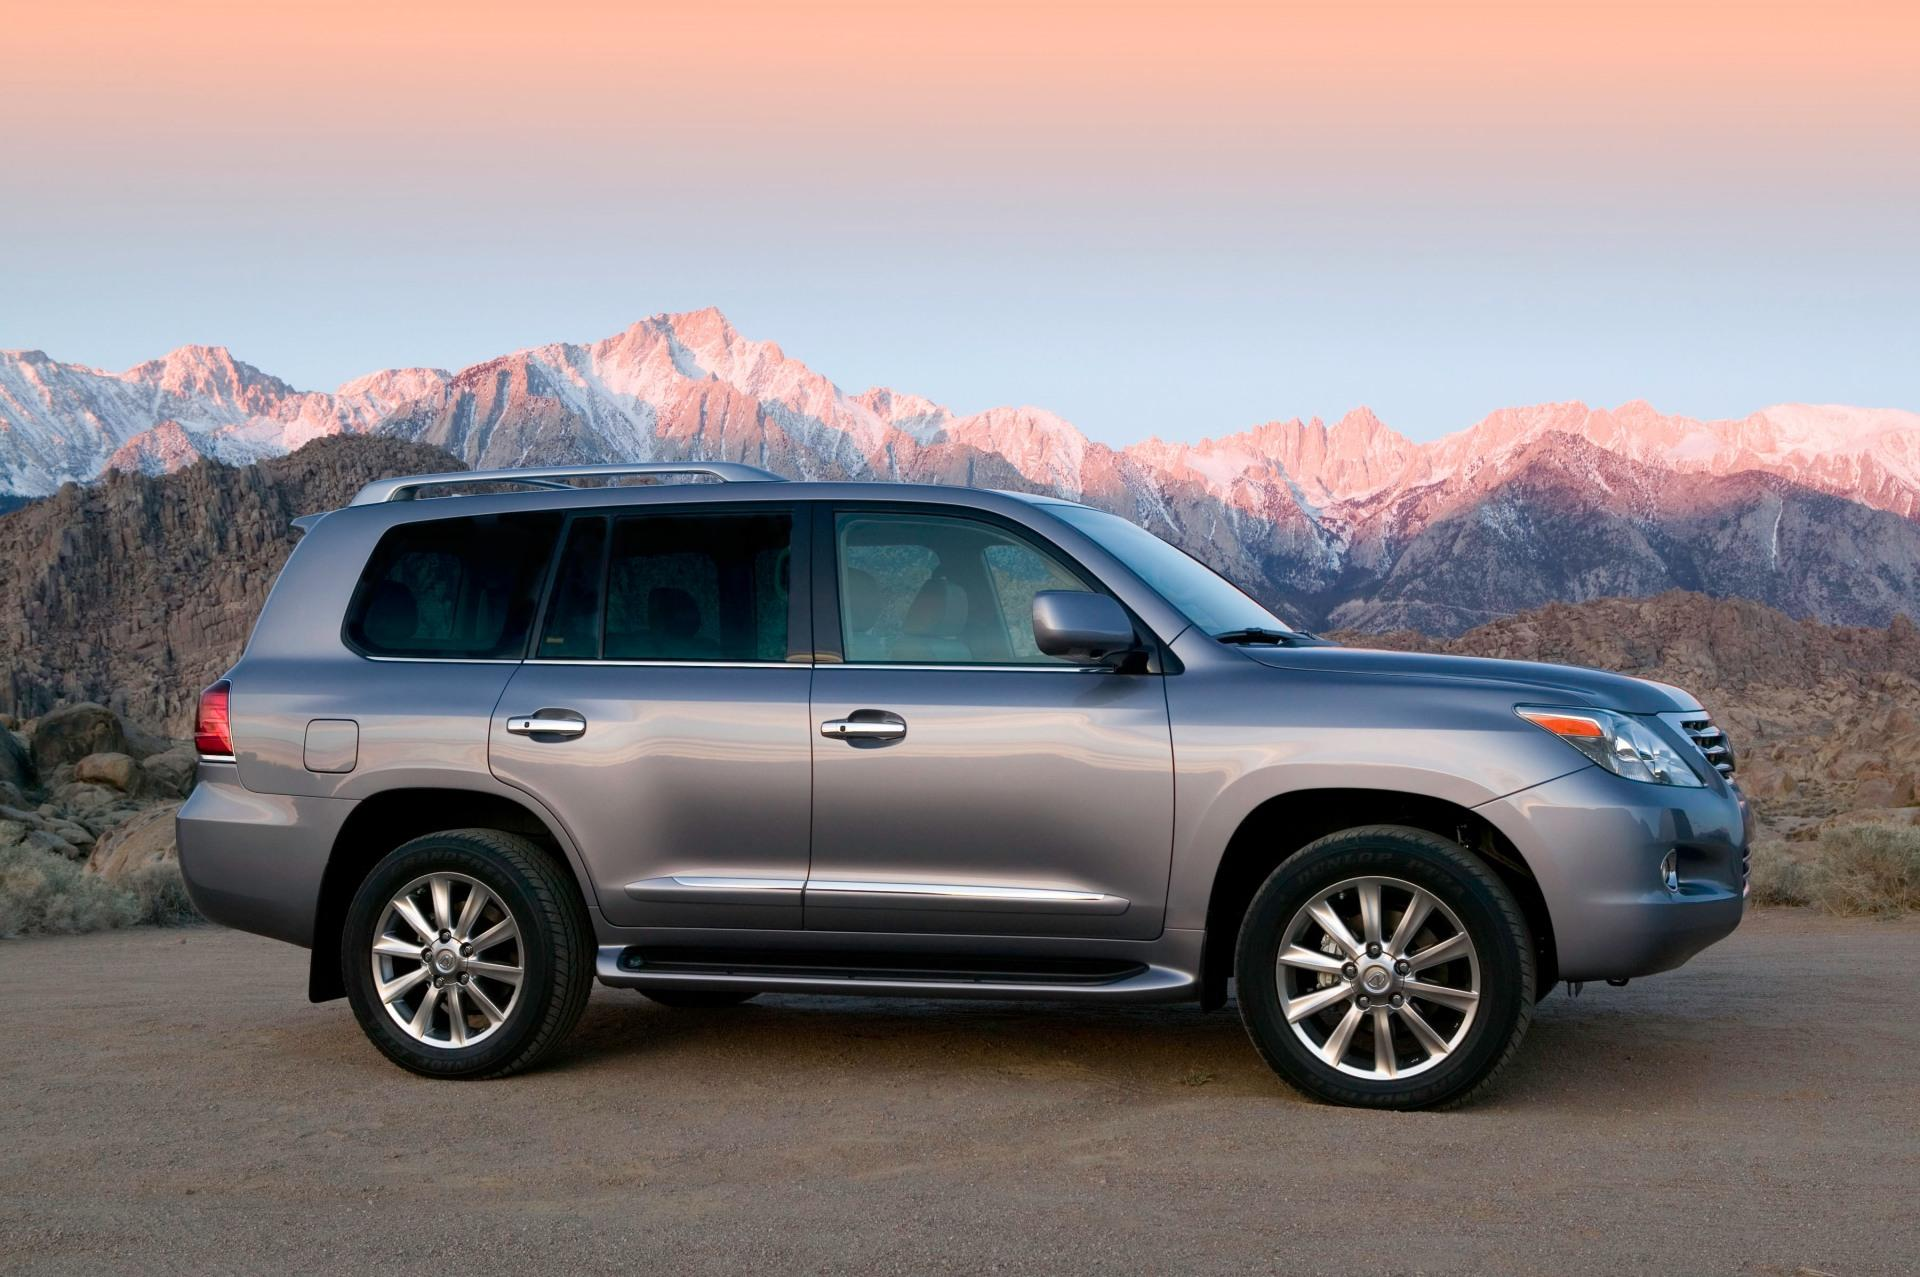 2011 lexus lx 570 technical specifications and data engine dimensions and mechanical details conceptcarz com